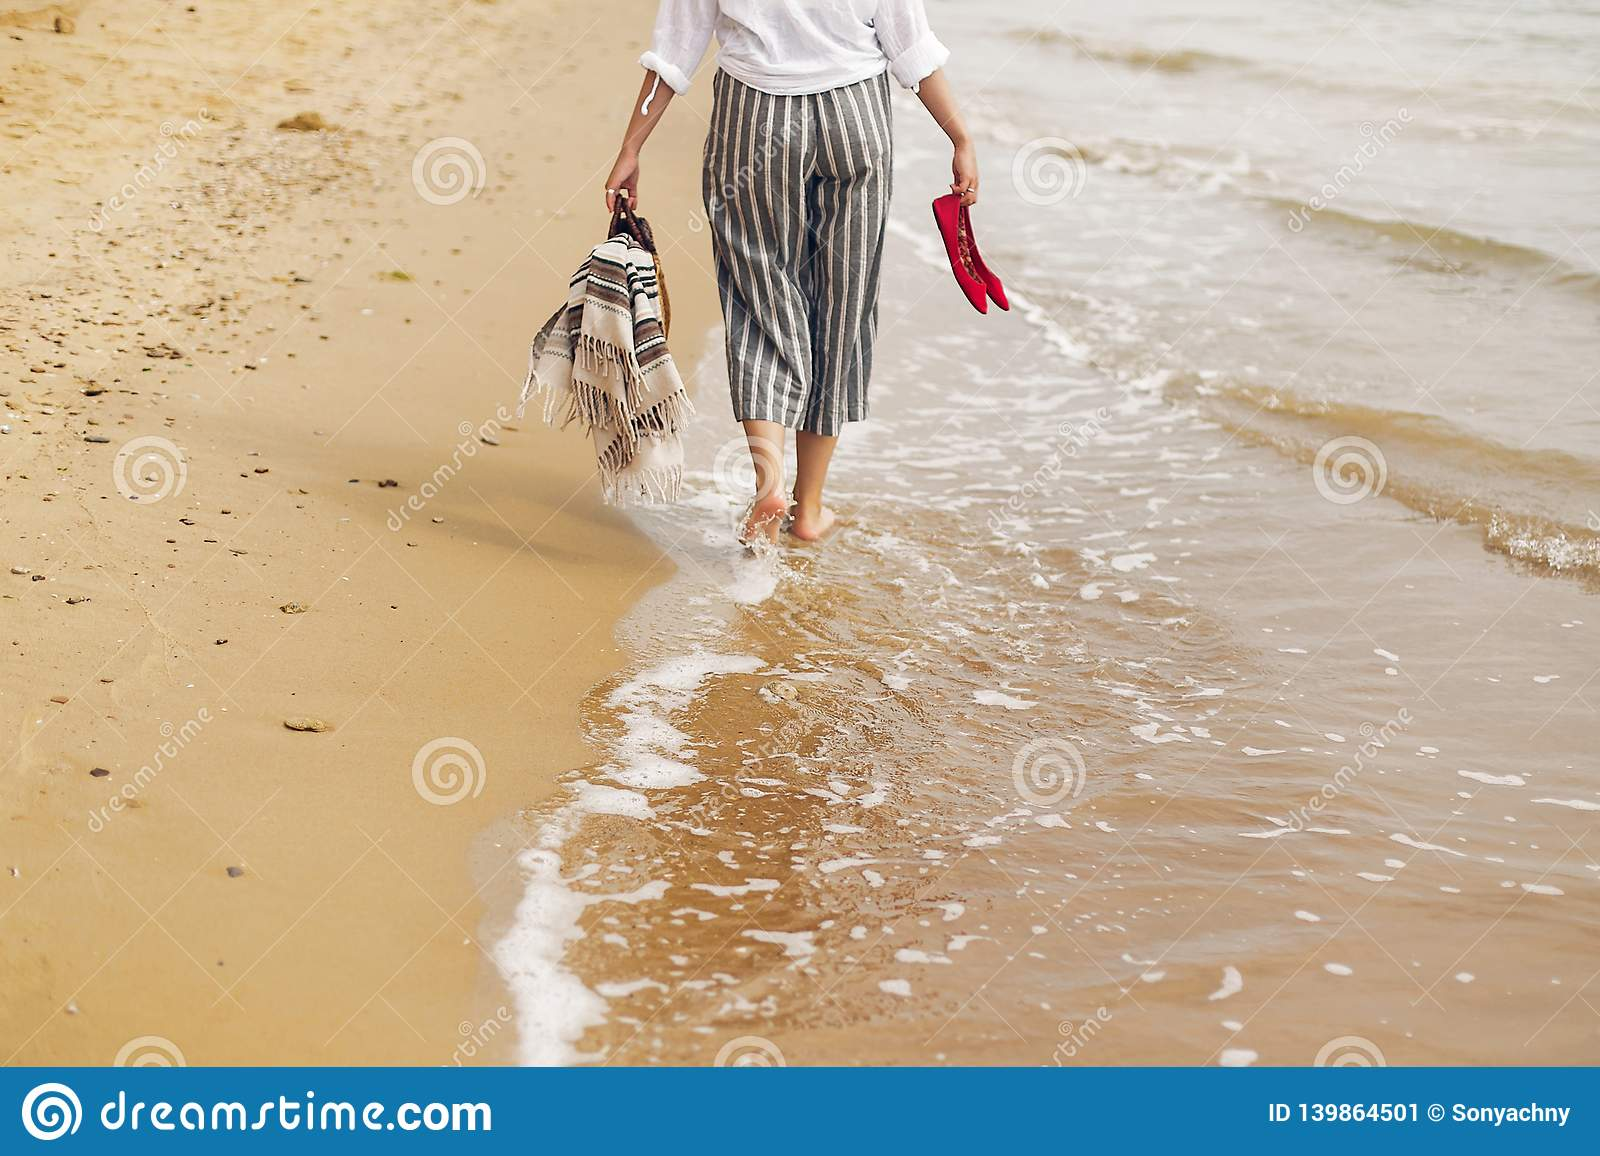 Woman walking barefoot on beach, back view of legs. Young girl relaxing on sandy beach, walking with shoes and bag in hands.